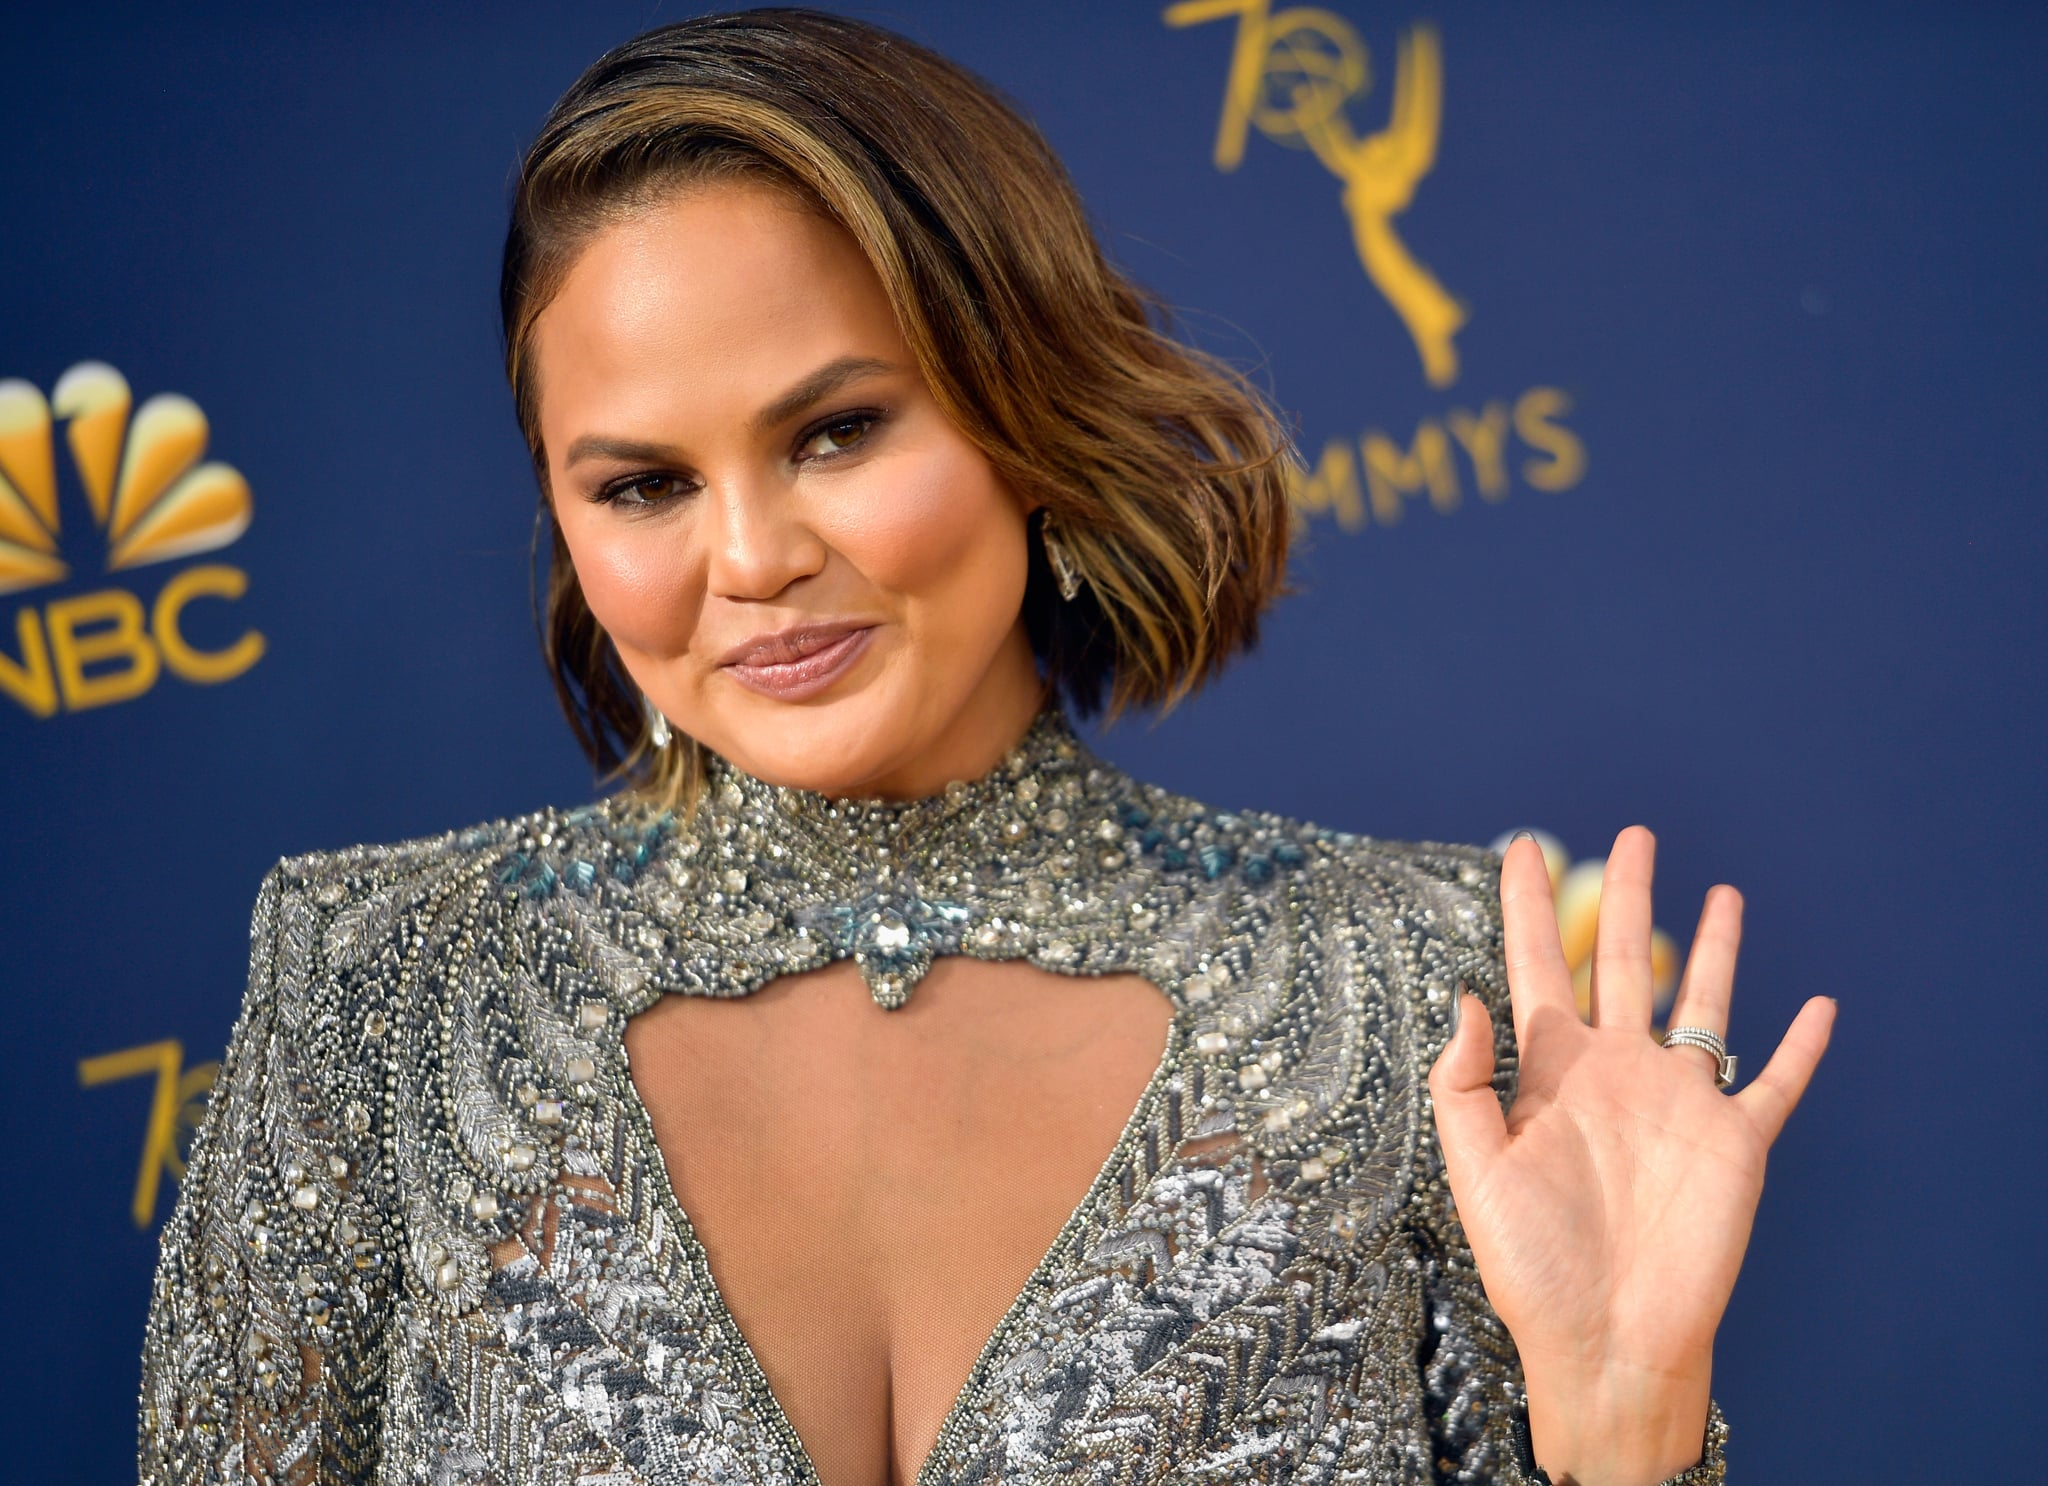 LOS ANGELES, CA - SEPTEMBER 17:  Chrissy Teigen attends the 70th Emmy Awards at Microsoft Theater on September 17, 2018 in Los Angeles, California.  (Photo by Matt Winkelmeyer/Getty Images)